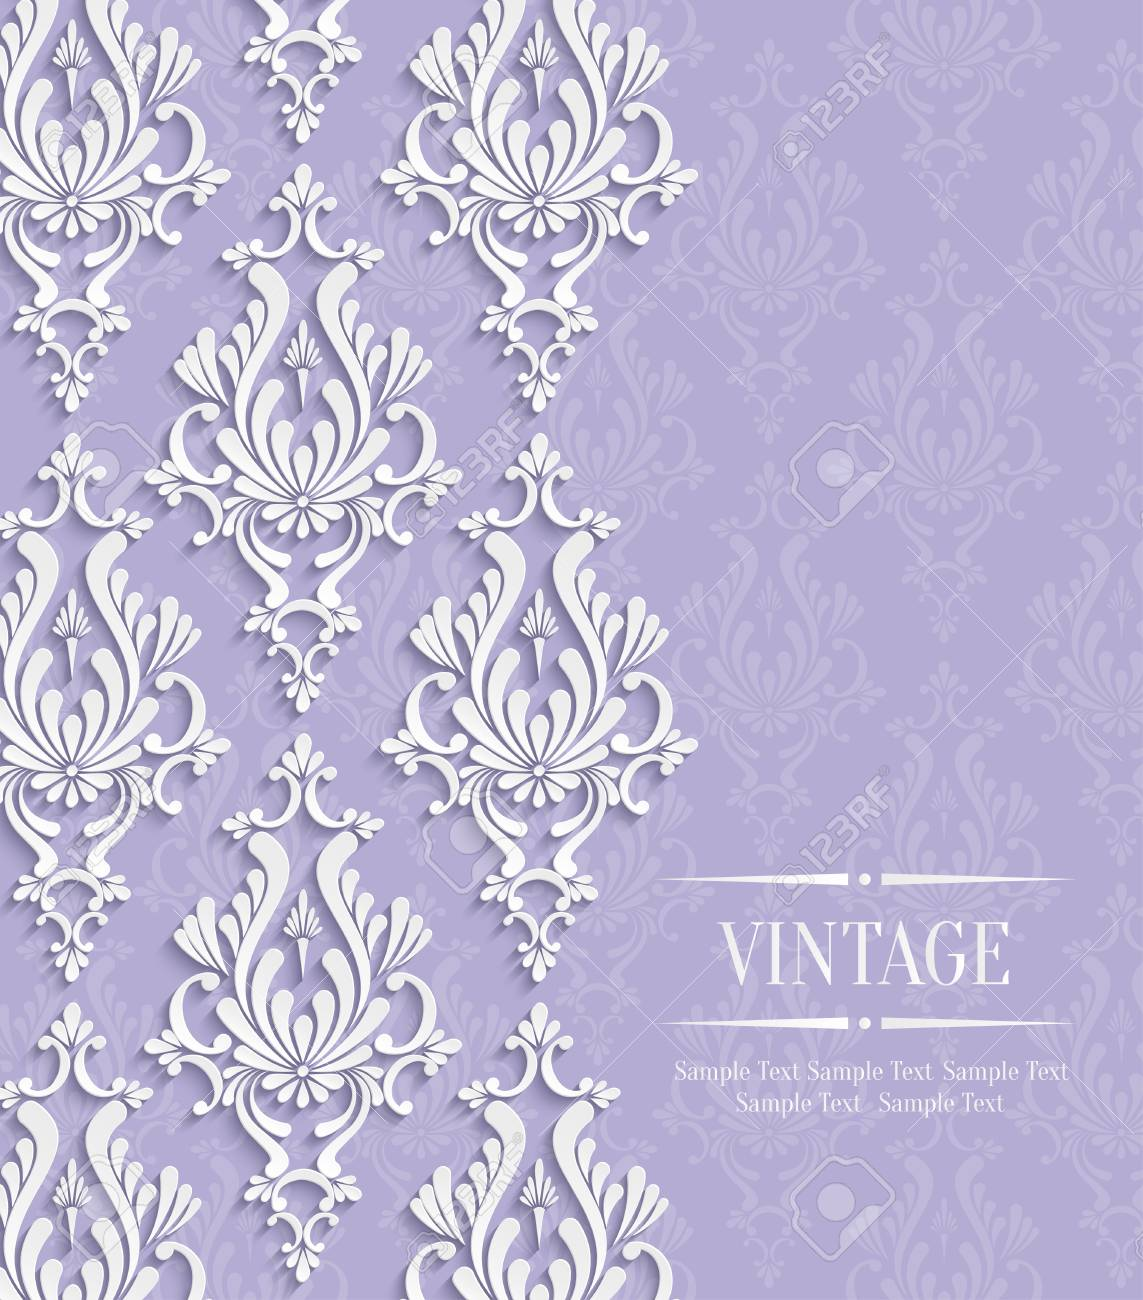 vector violet vintage background with floral damask pattern for royalty free cliparts vectors and stock illustration image 38961453 vector violet vintage background with floral damask pattern for